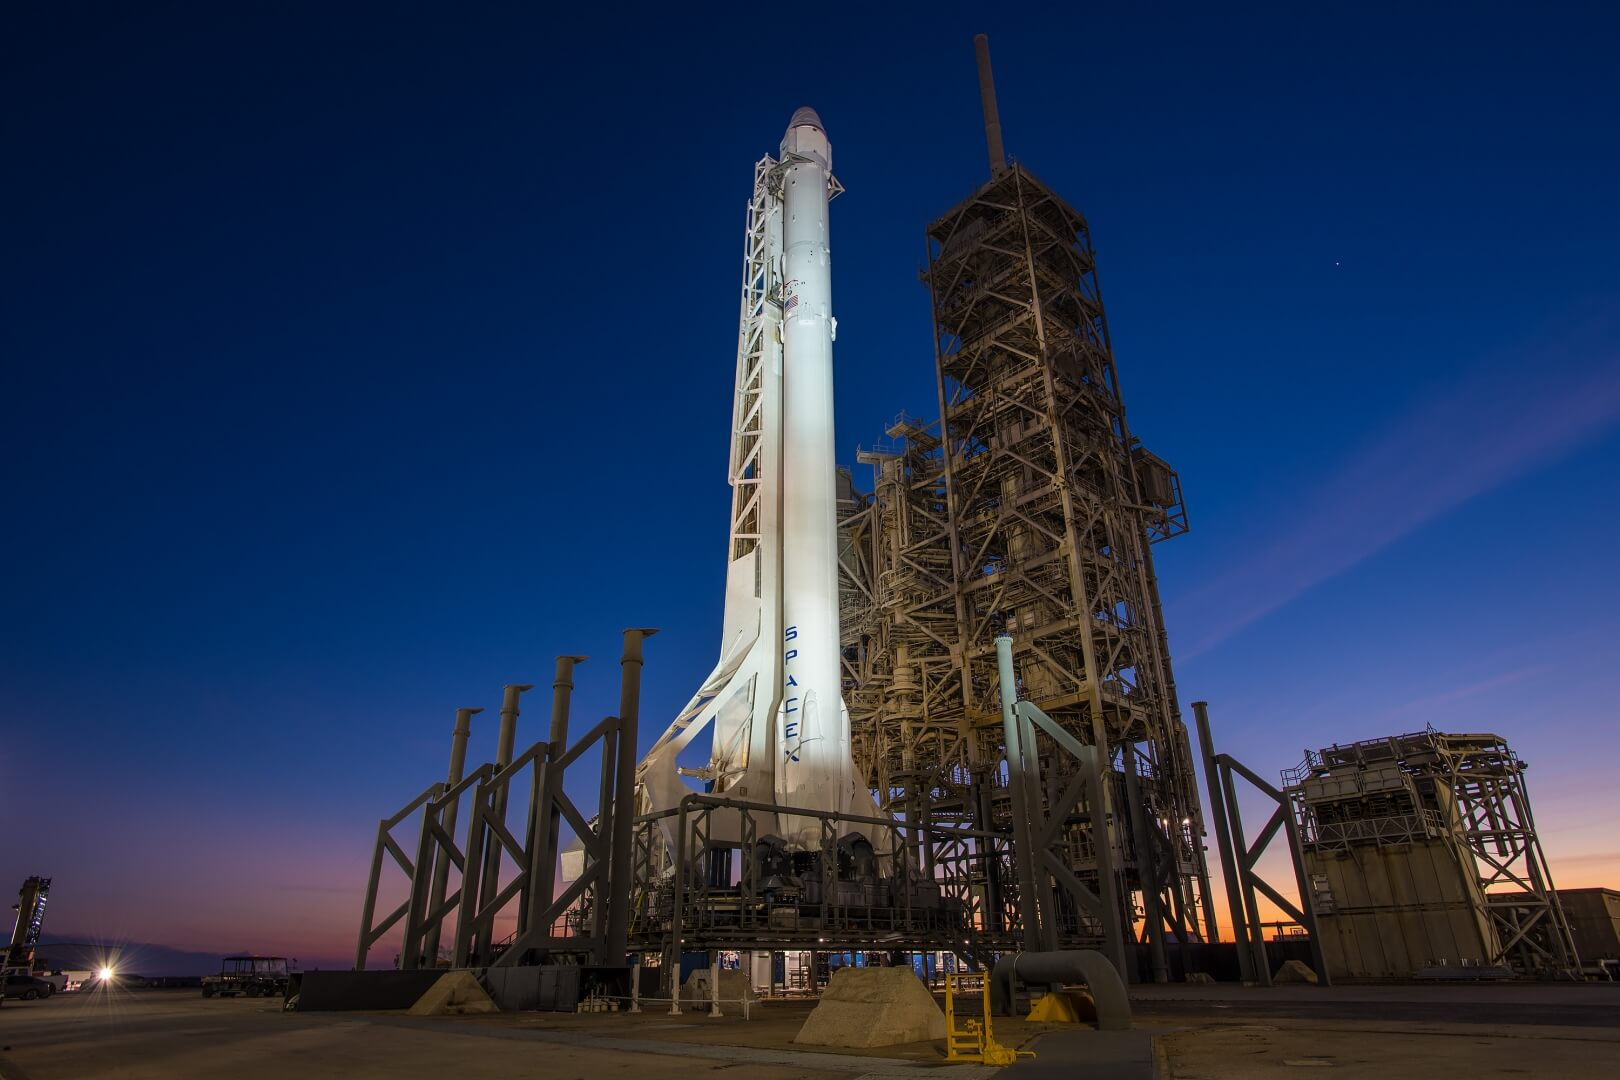 Elon Musk will send the first manned rocket to the ISS in may